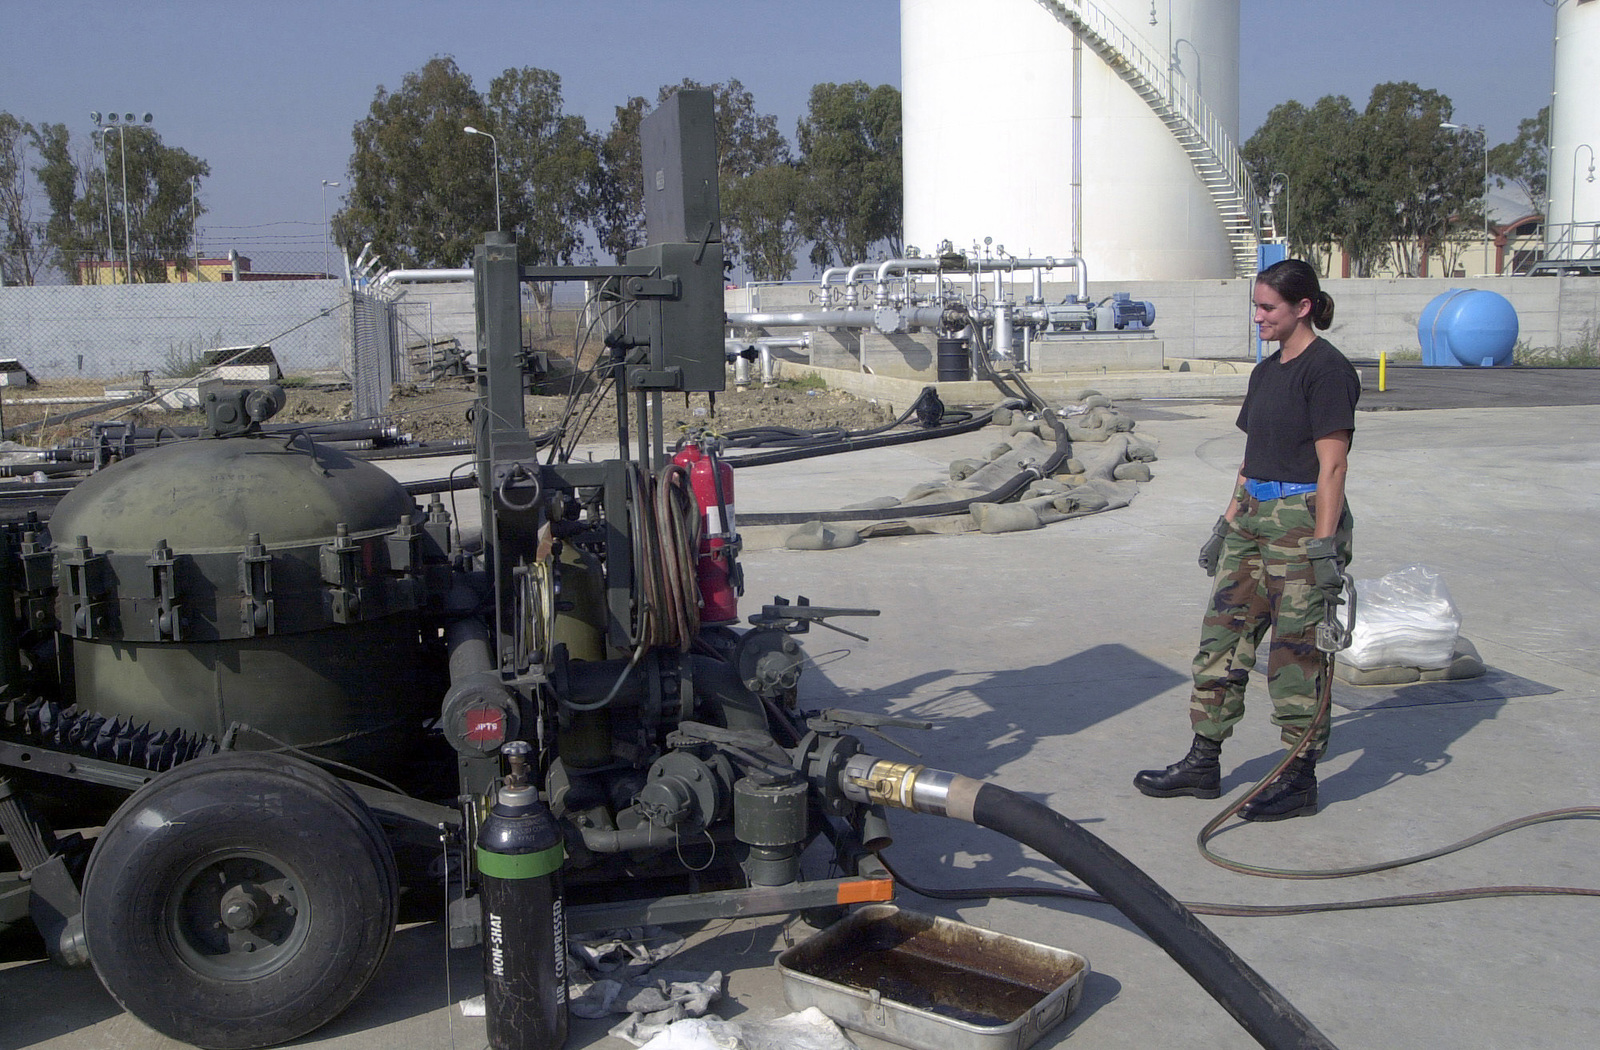 STAFF Sergeant Julia Nelson, US Air Force (USAF), fuels specialist, 375th Logistics Support Squadron, Scott Air Force Base, Illinois, monitors the gauges telling her how much fuel is being pumped into her fuel truck at Naval Air Station (NAS) Sigonella, Italy, during Operation ENDURING FREEDOM. In response to the terrorist attacks on September 11, 2001 at the New York World Trade Center and the Pentagon, President George W. Bush initiated Operation ENDURING FREEDOM in support of the Global War on Terrorism (GWOT), fighting terrorism abroad